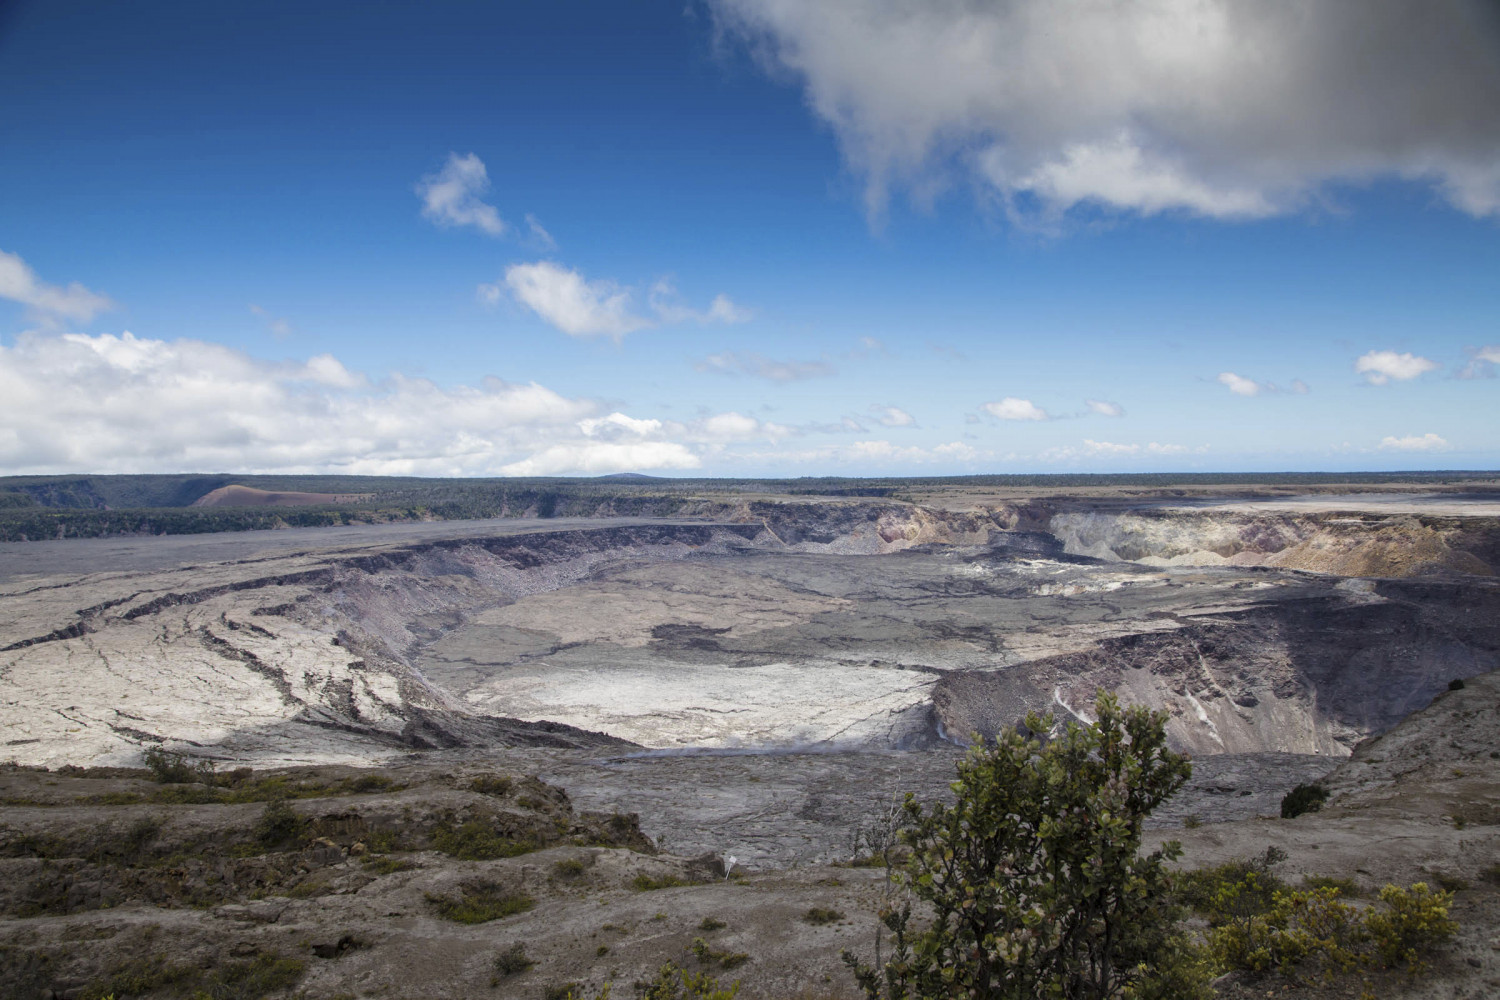 This National Park Service photo shows Halemaumau Crater and Kilauea Caldera